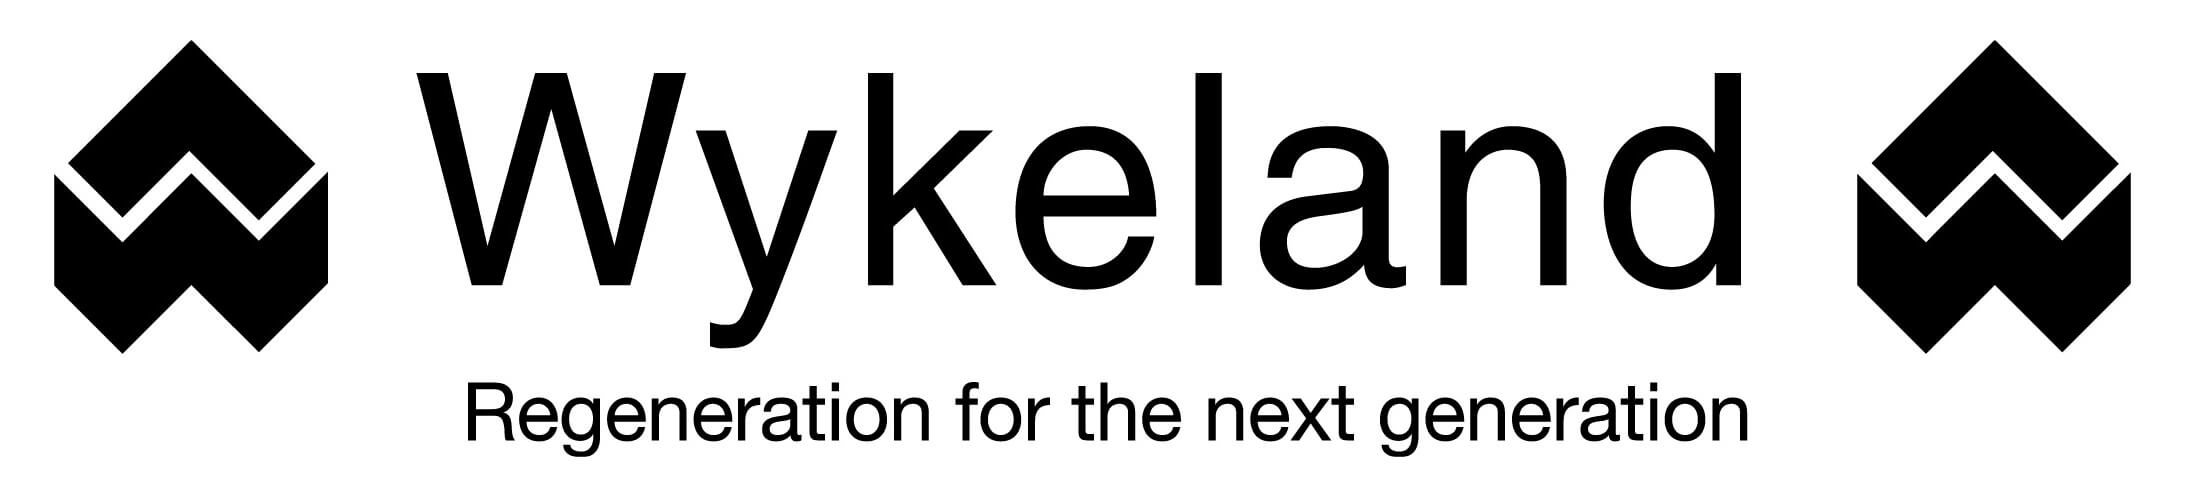 Wykeland-logo-with-strapline-and-border.jpg